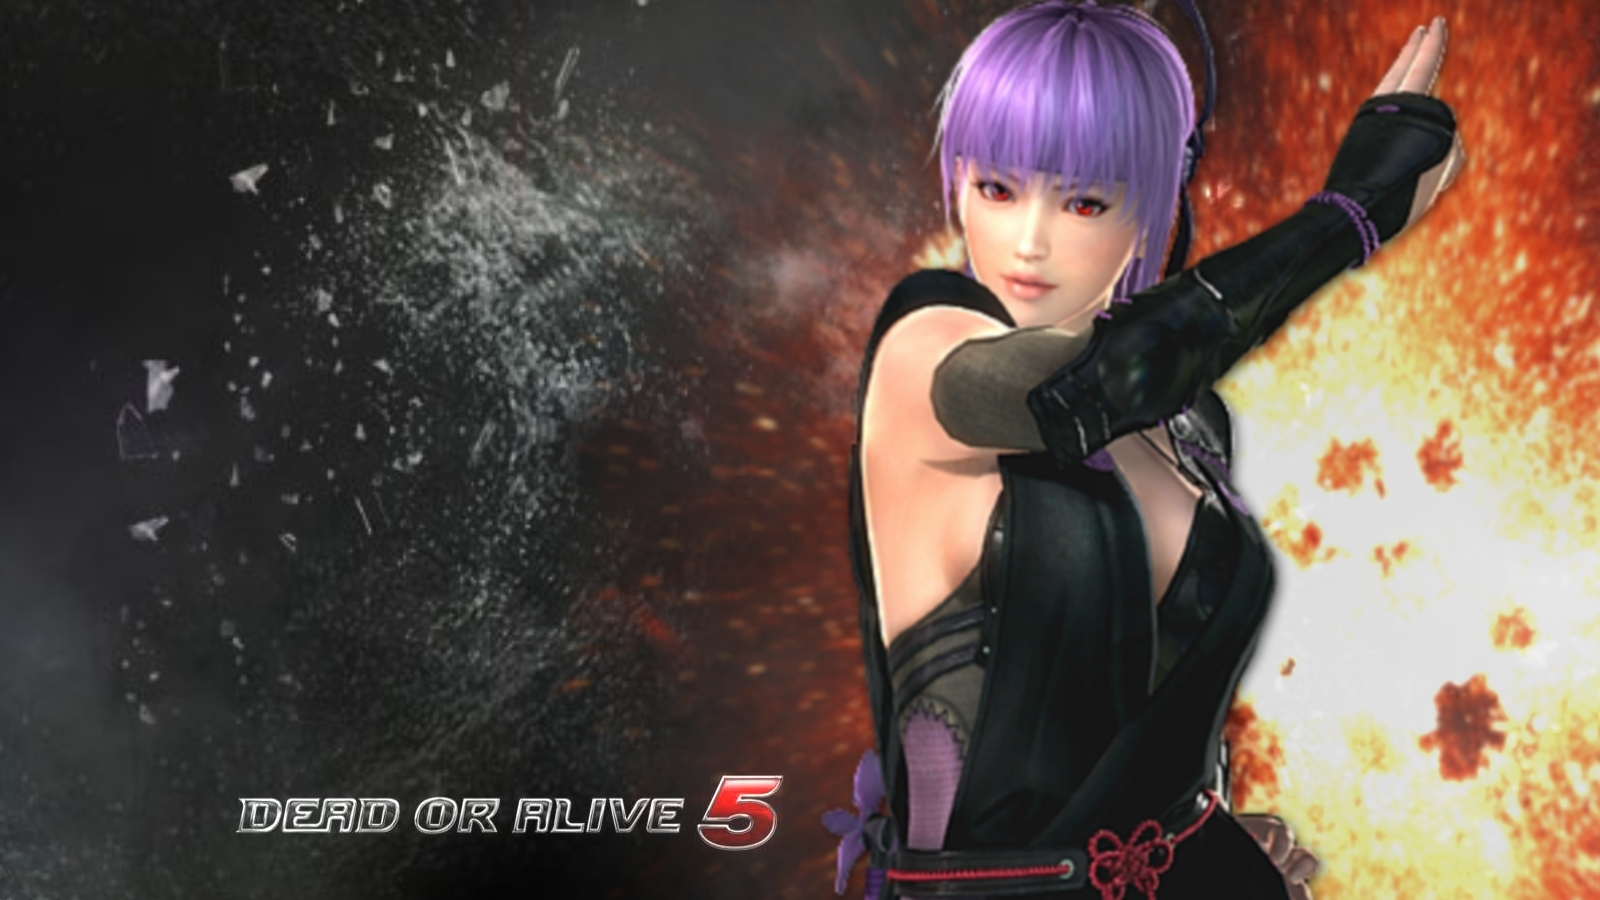 Dead or Alive Wallpapers HD - WallpaperSafari